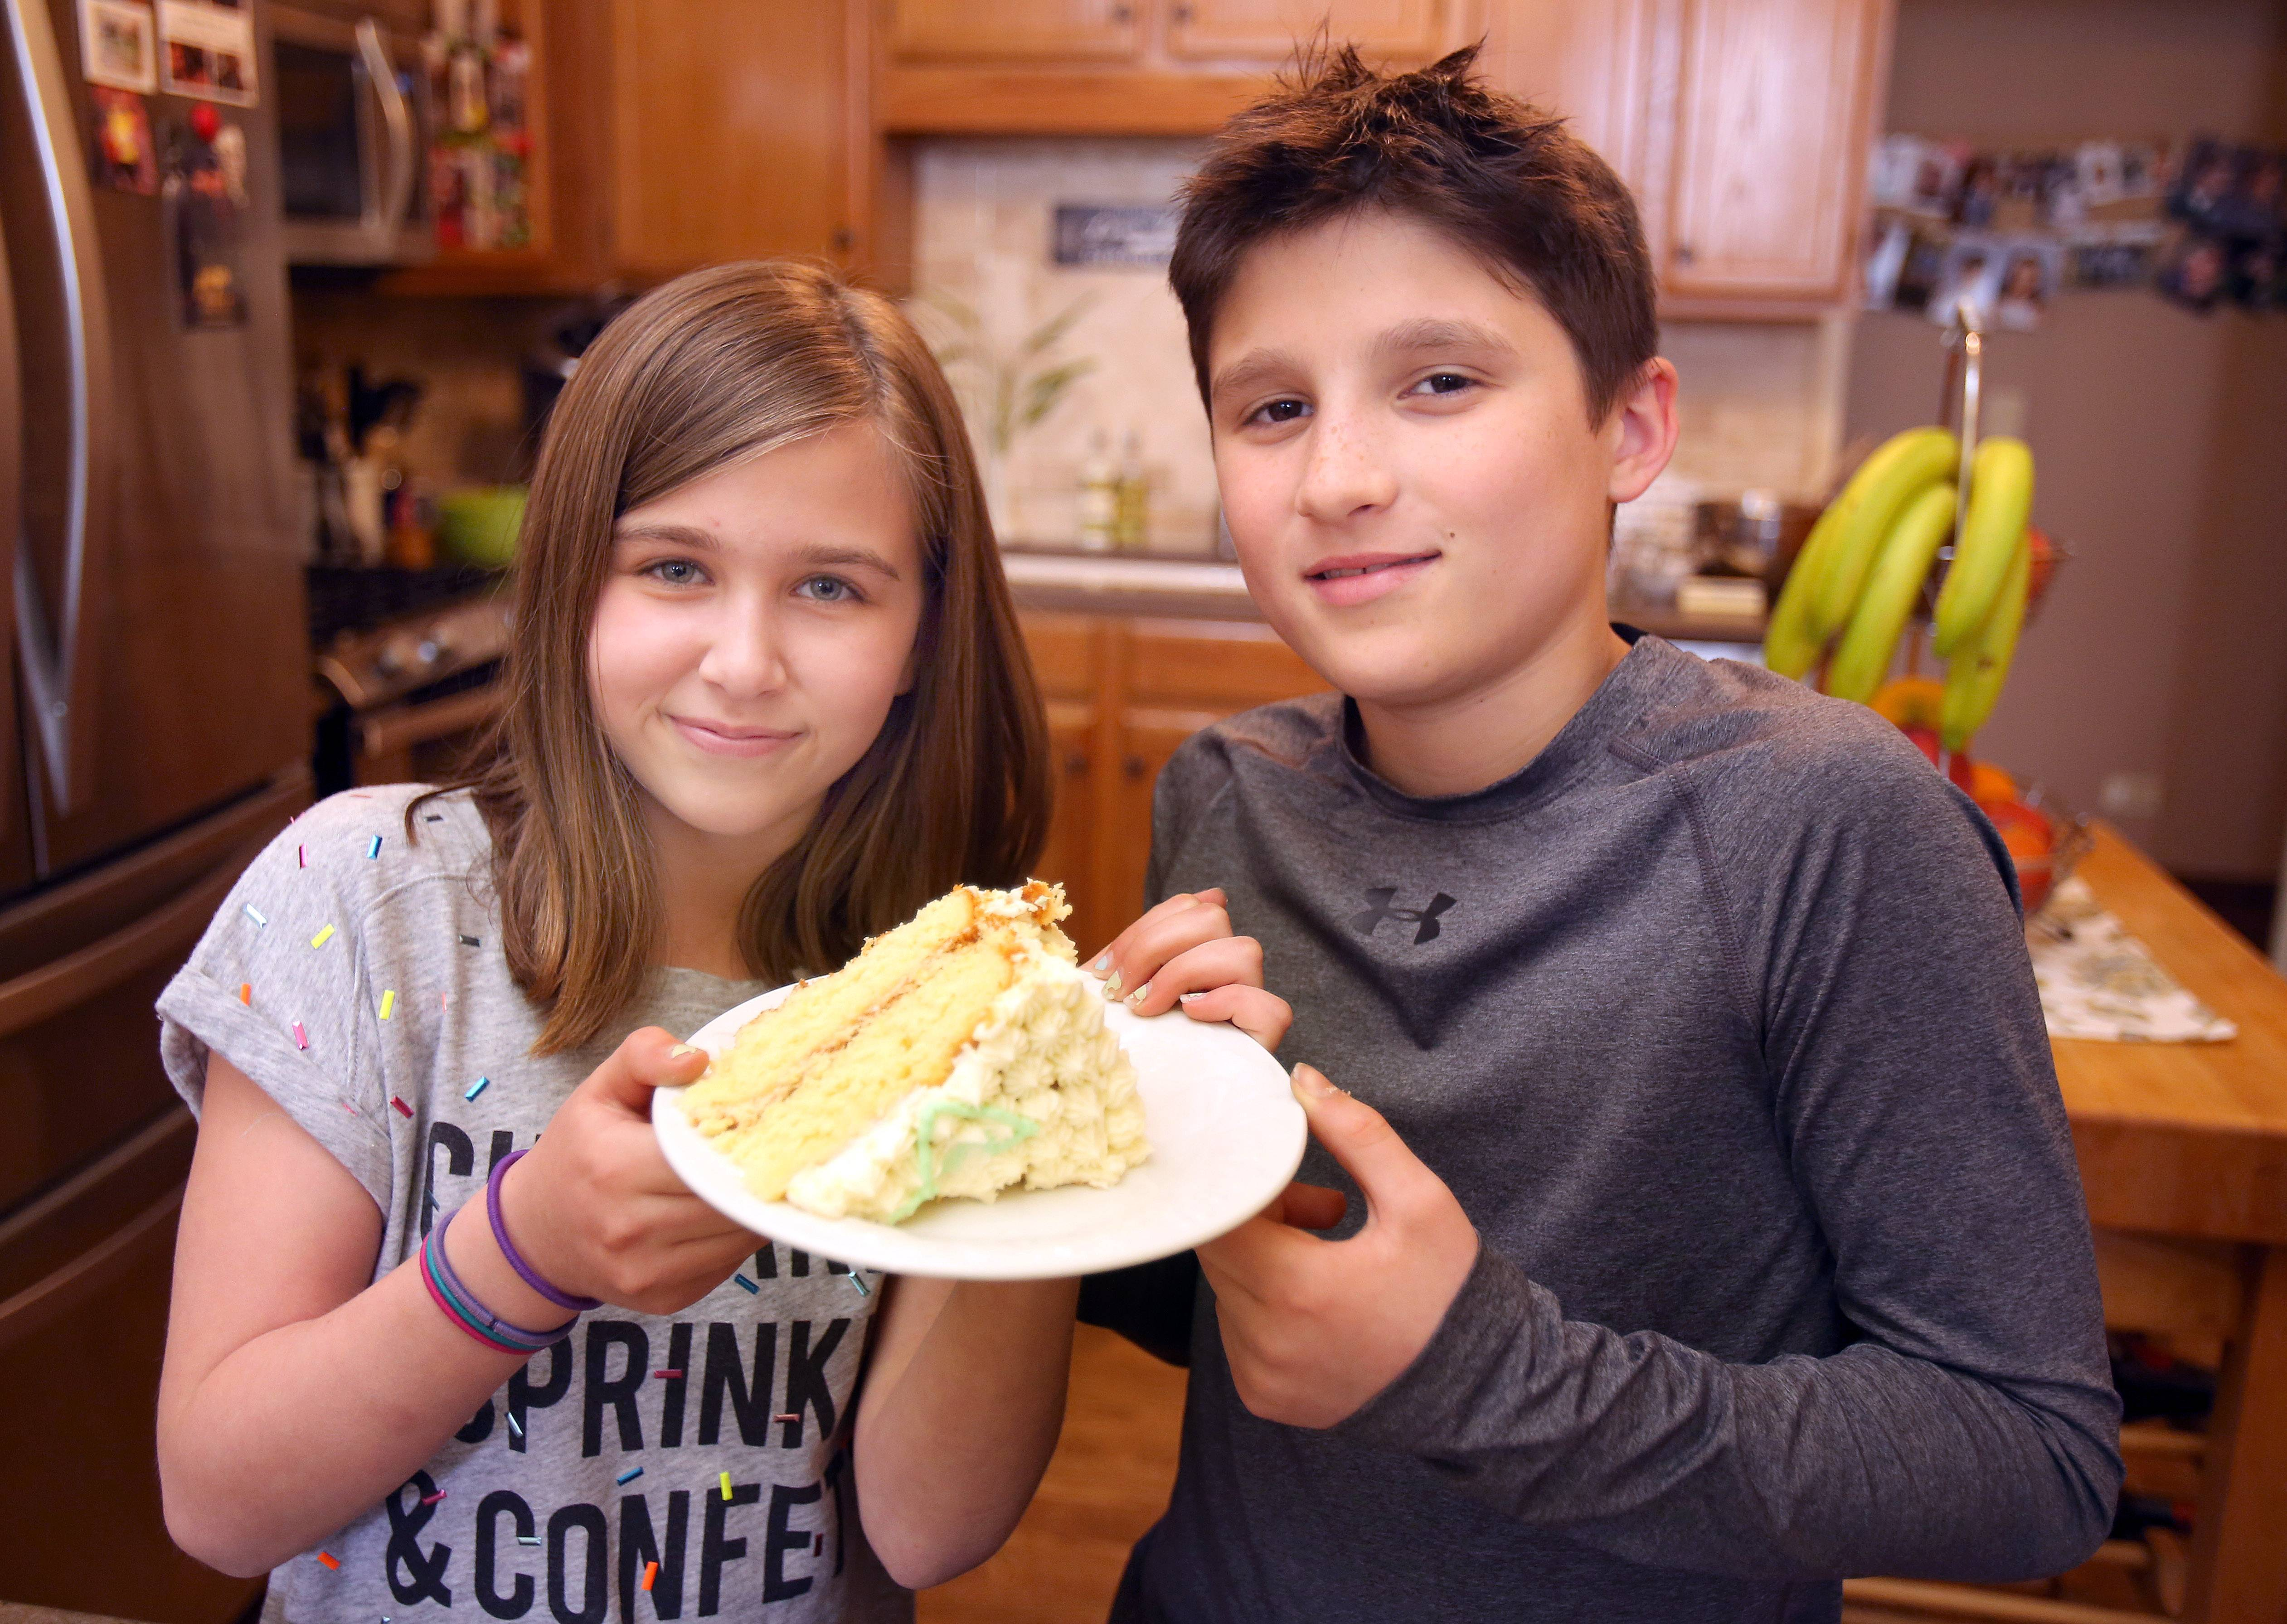 A love of cooking and baking runs in this Gurnee family